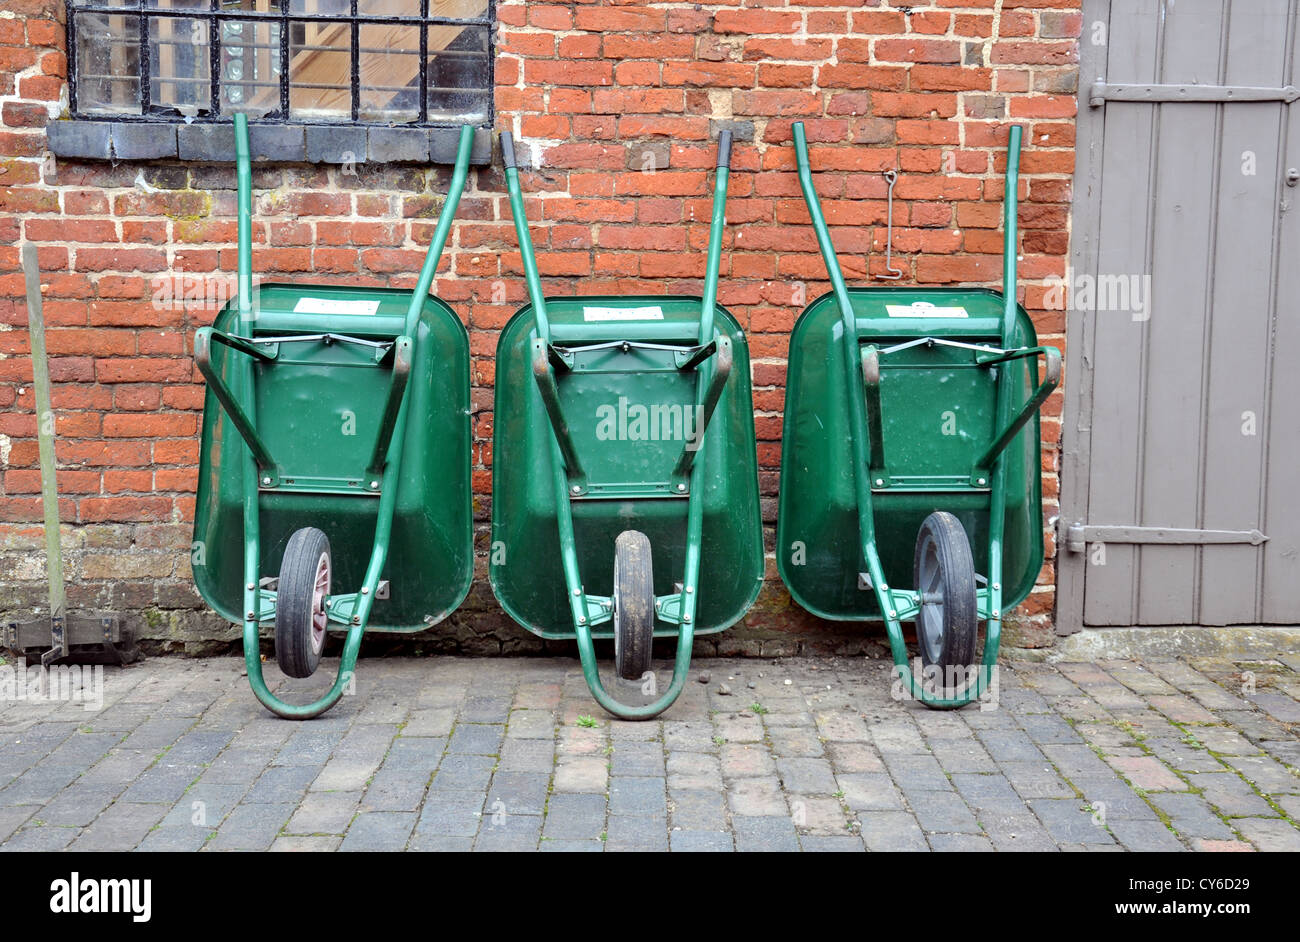 Three green wheelbarrows leaning against an outhouse wall - Stock Image